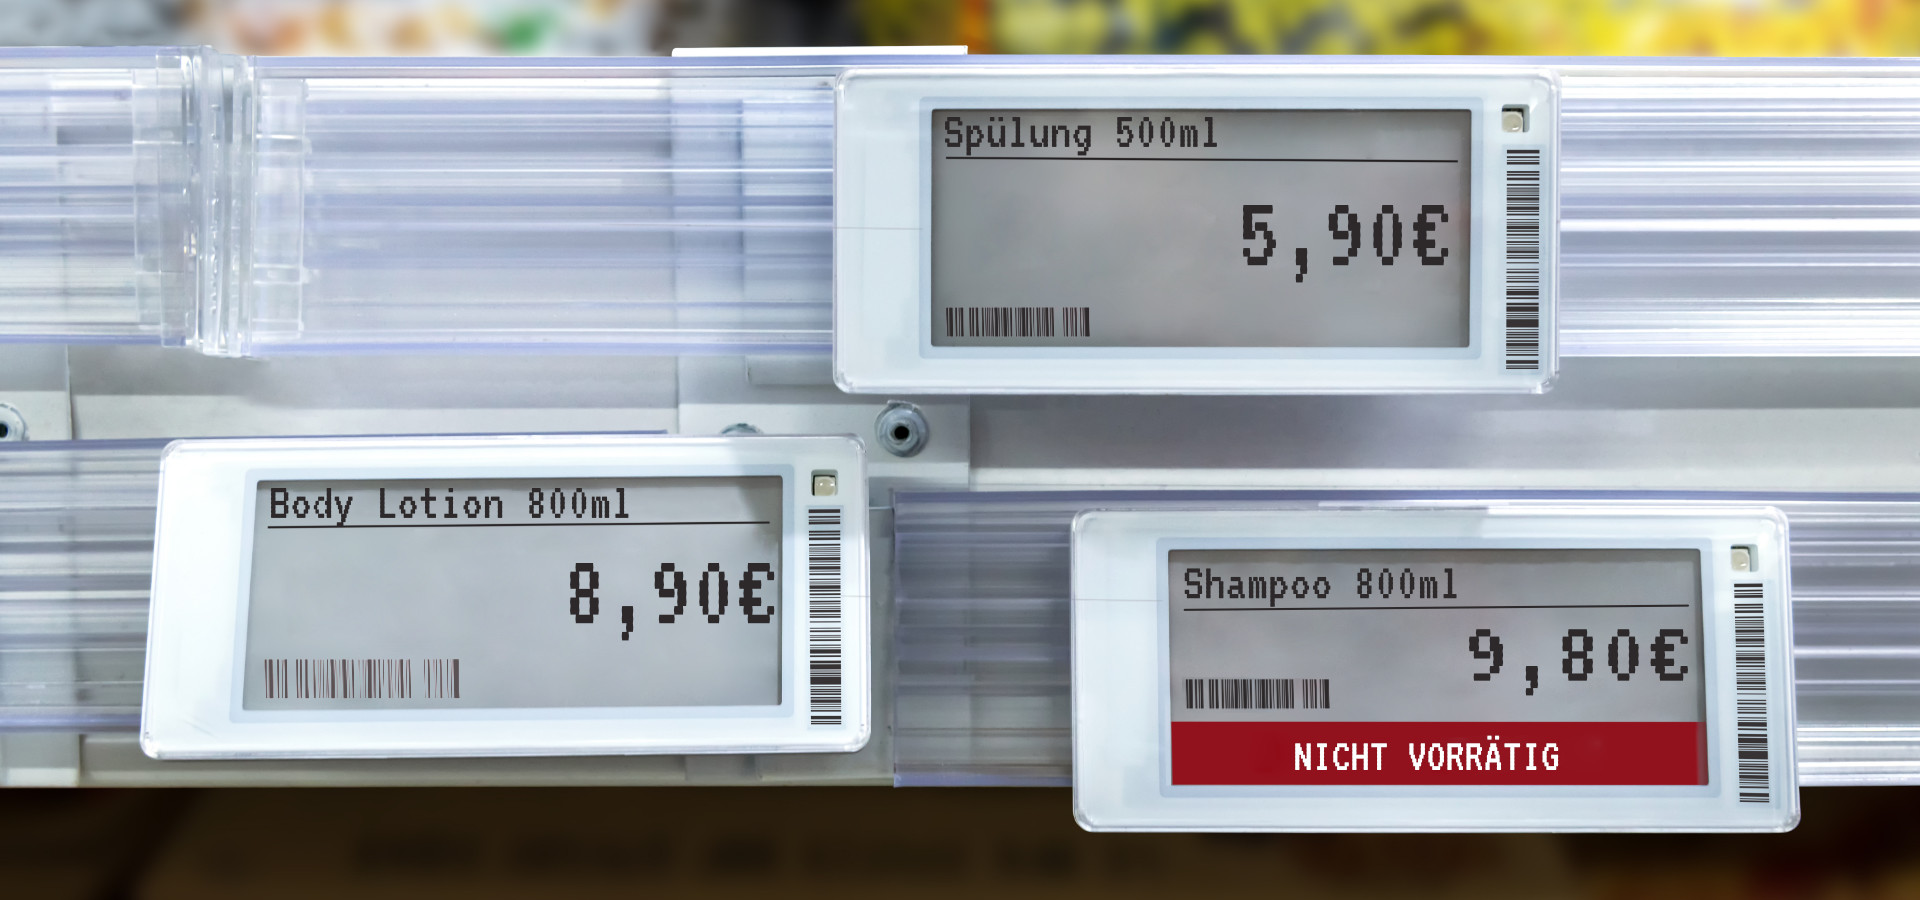 NFC displays with different prices at retail